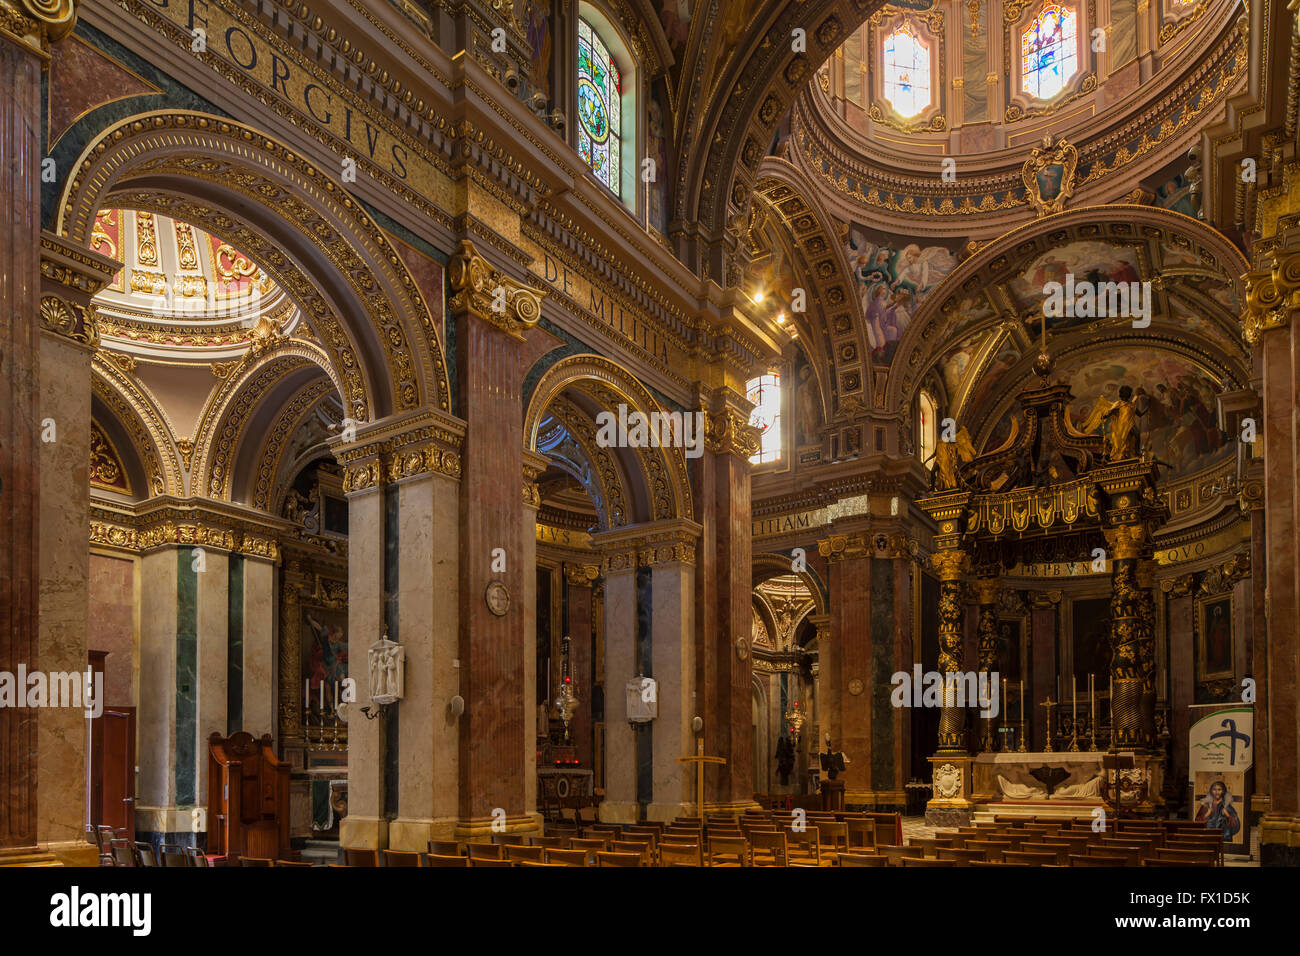 Interior of St George's Basilica in Victoria (Rabat) on Gozo, Malta. - Stock Image